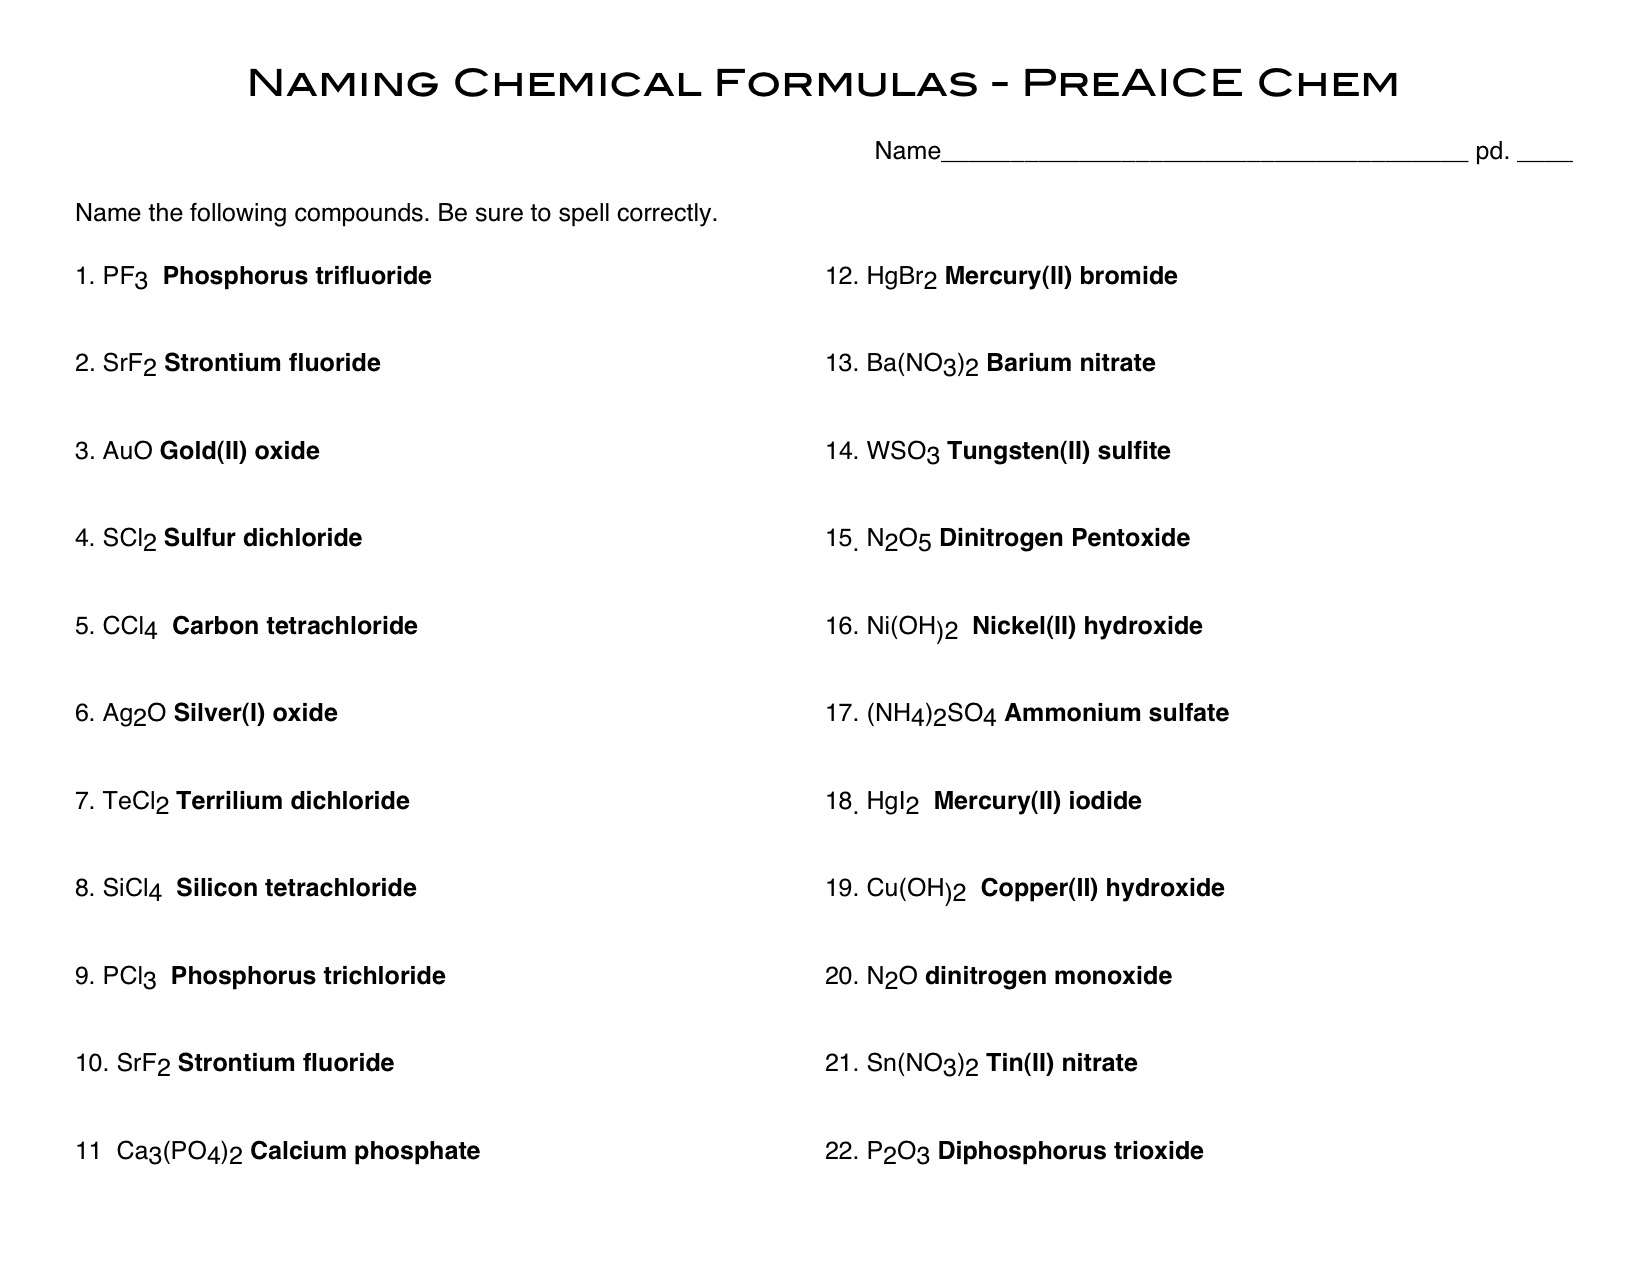 Worksheets Writing Chemical Formulas Worksheet bonding and chemical formulas worksheet answers pichaglobal november calendar